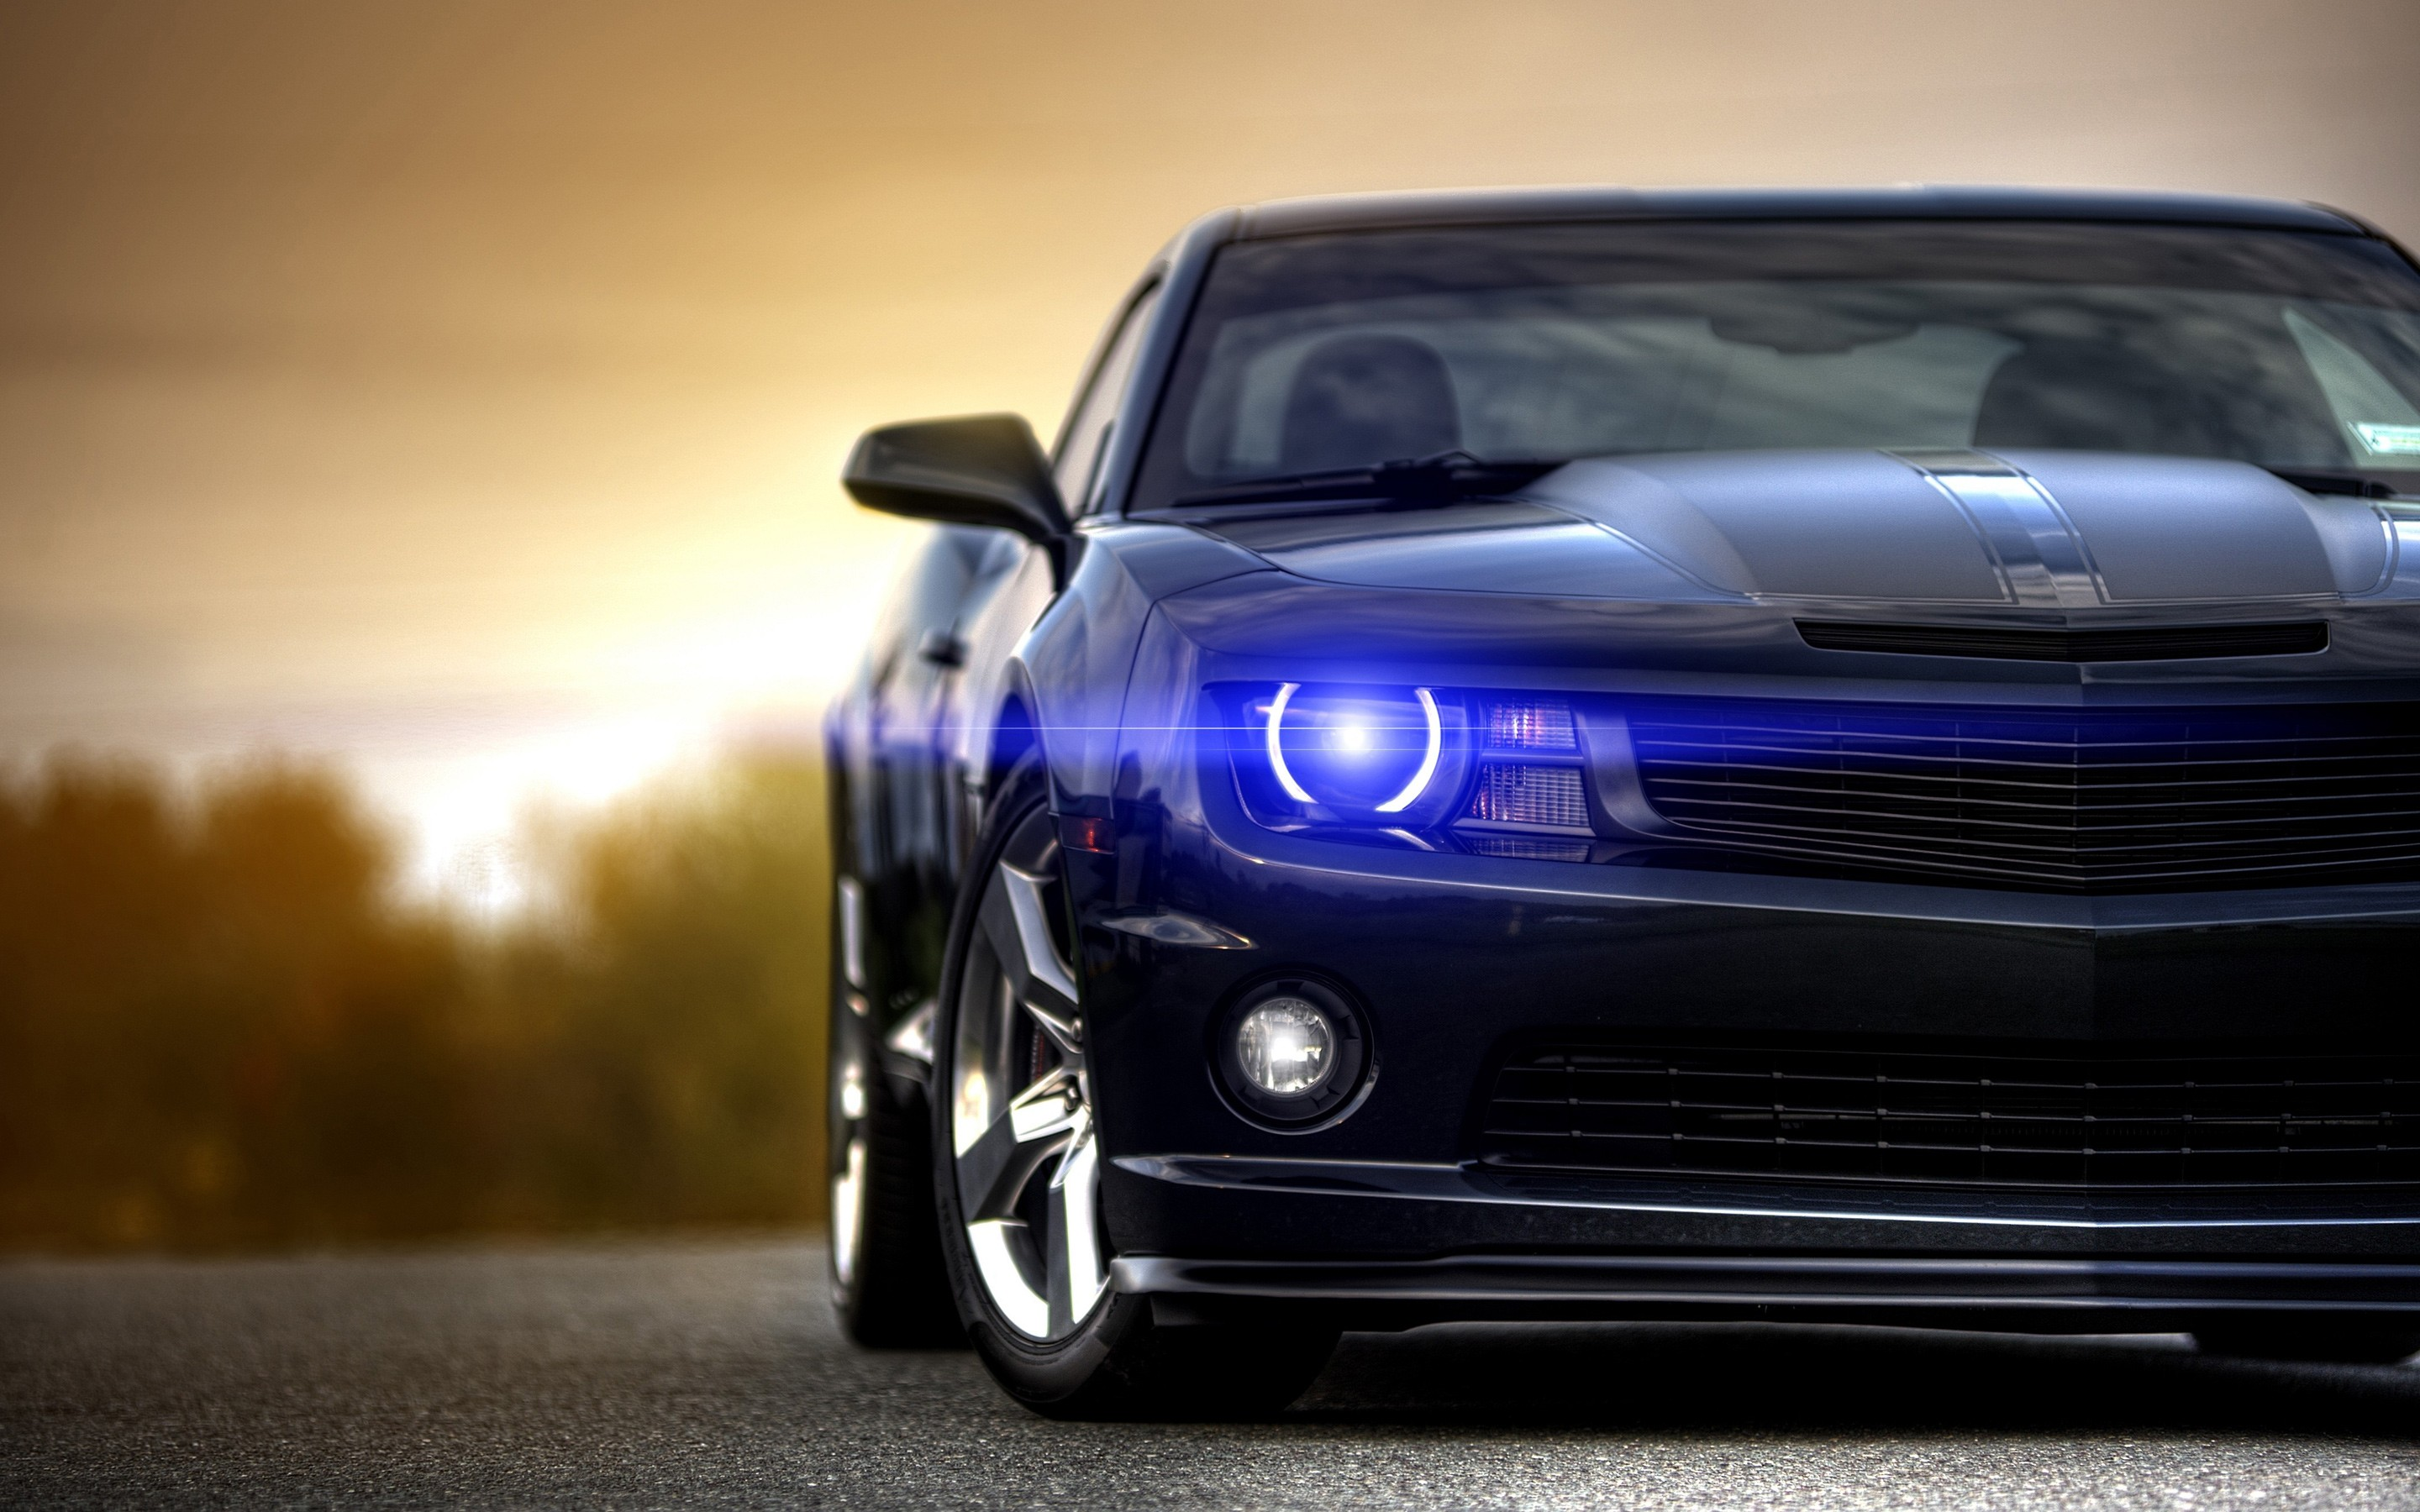 Muscle Cars Wallpapers Download Chevrolet Camaro Muscle Car Wallpapers Hd Wallpapers